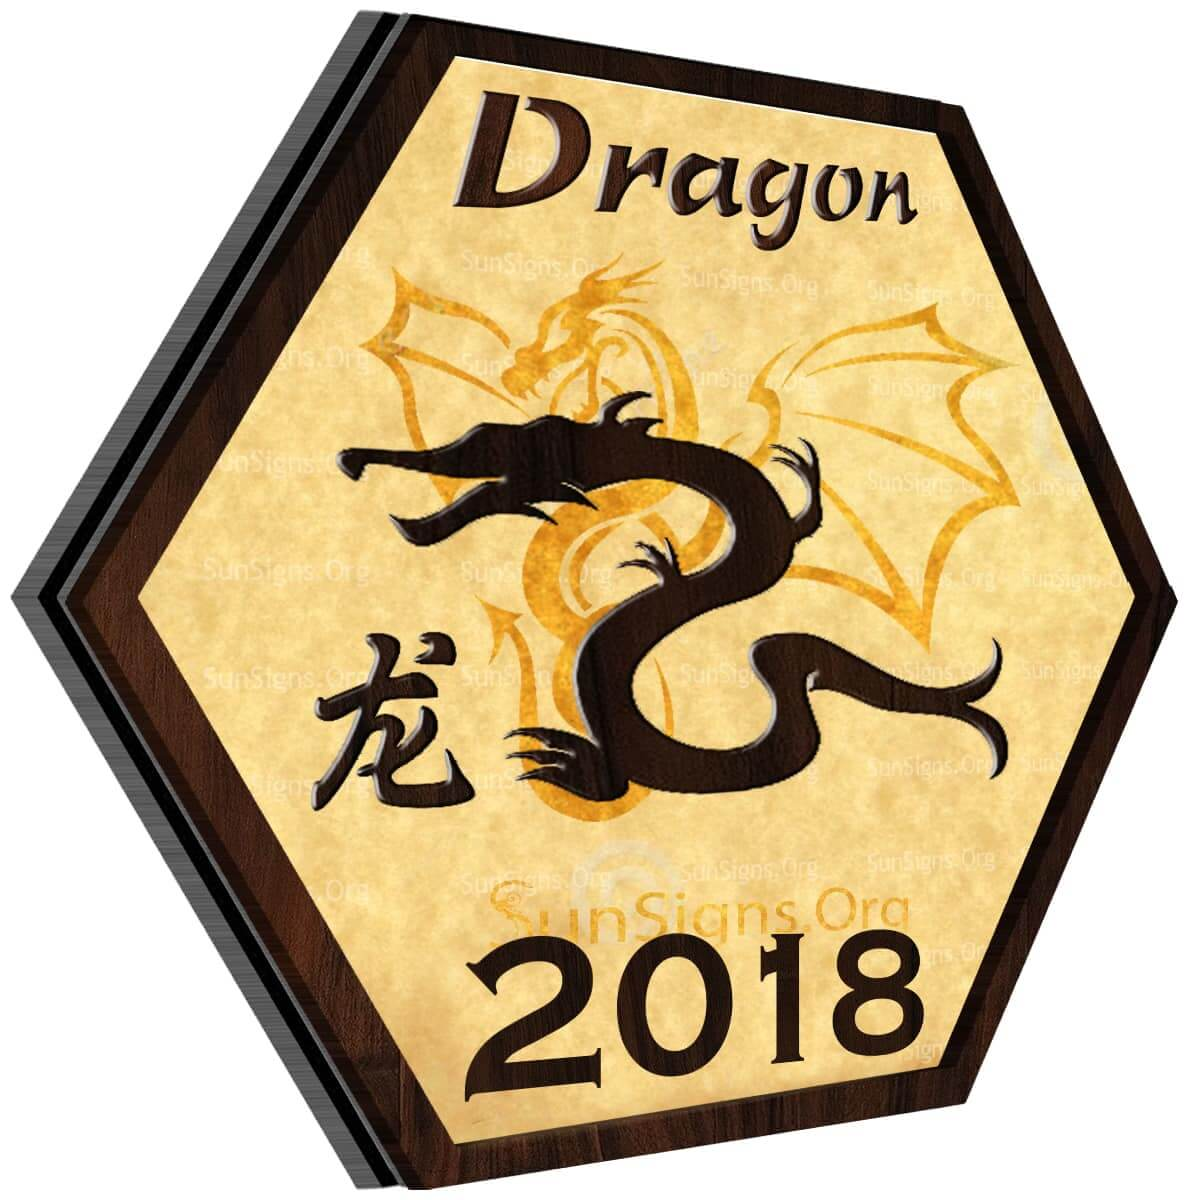 Dragon Horoscope 2018 Predictions For Love, Finance, Career, Health And Family